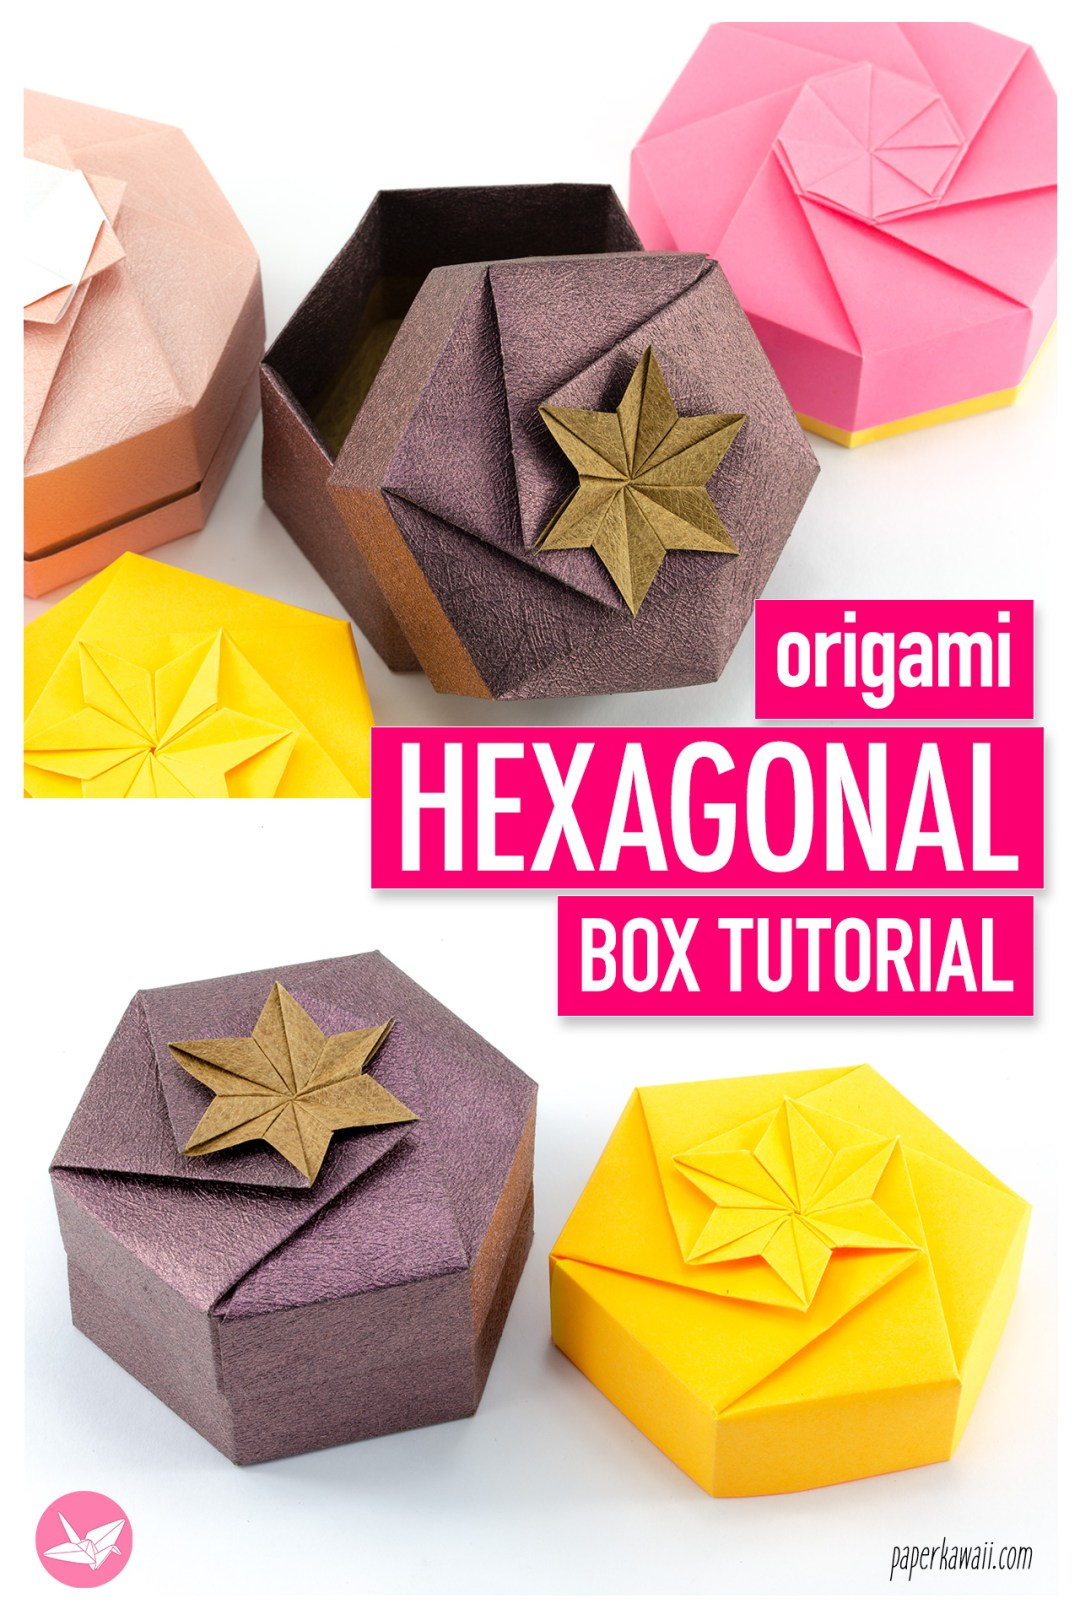 AN EASY PEASY ORIGAMI GIFT BOX (With images) | Origami gifts, Diy ... | 1620x1080